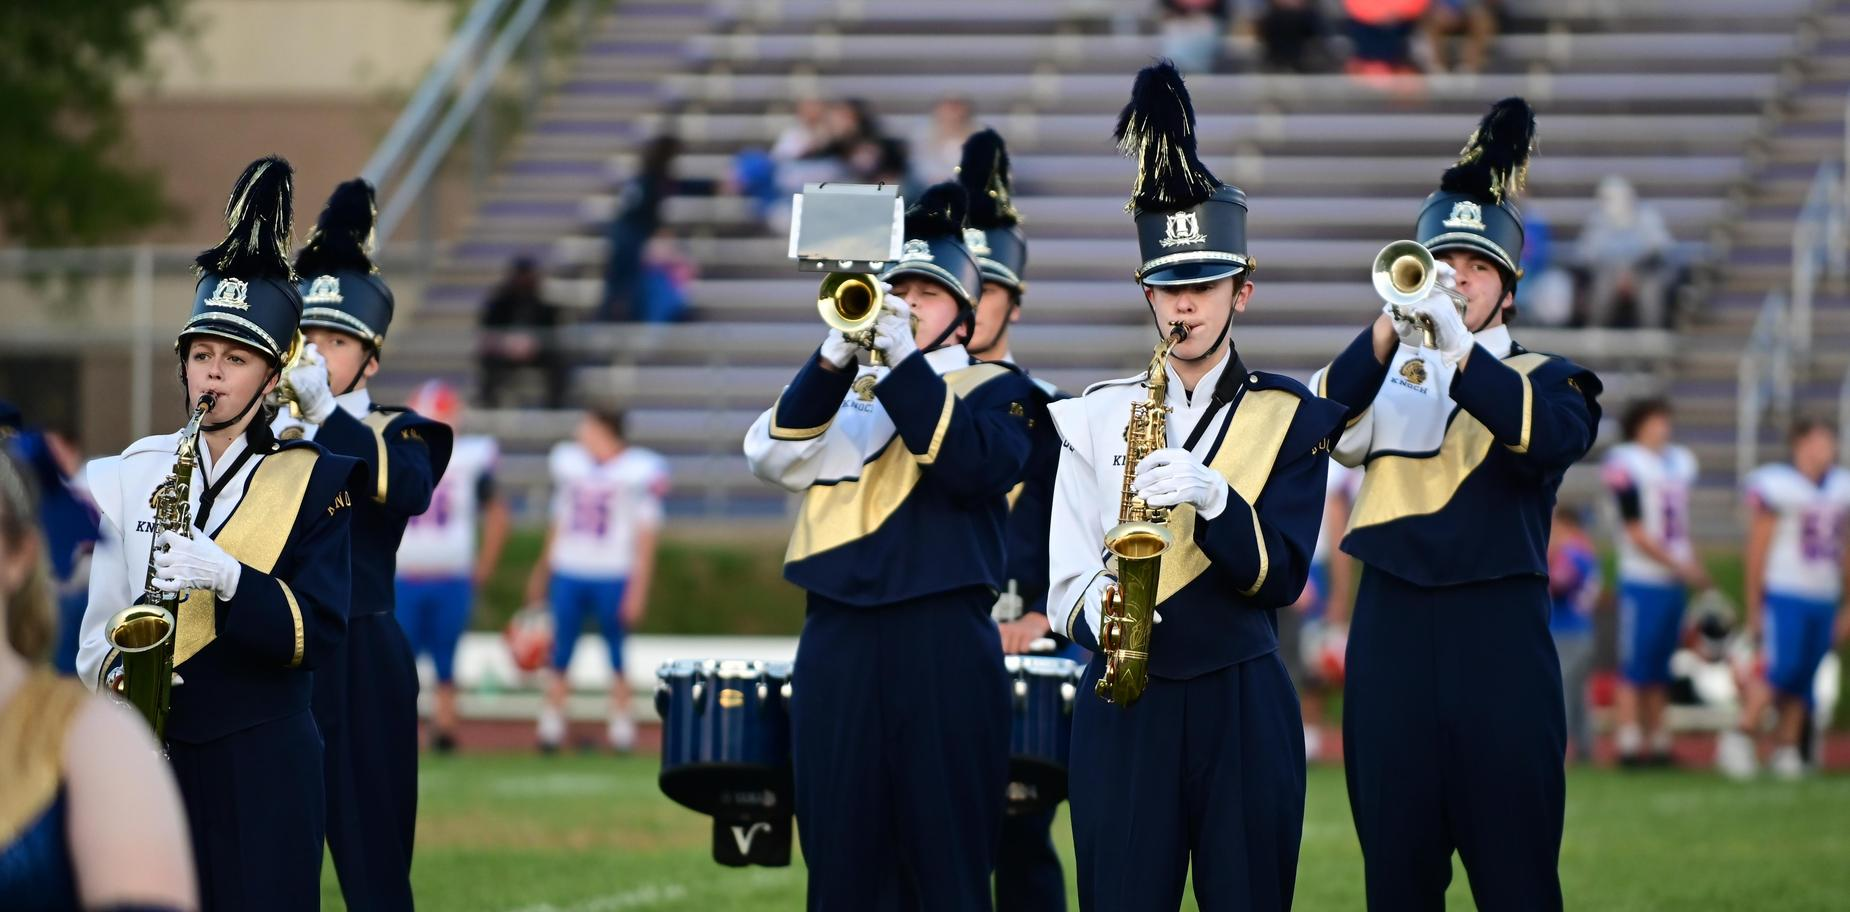 marching band musicians performing on field